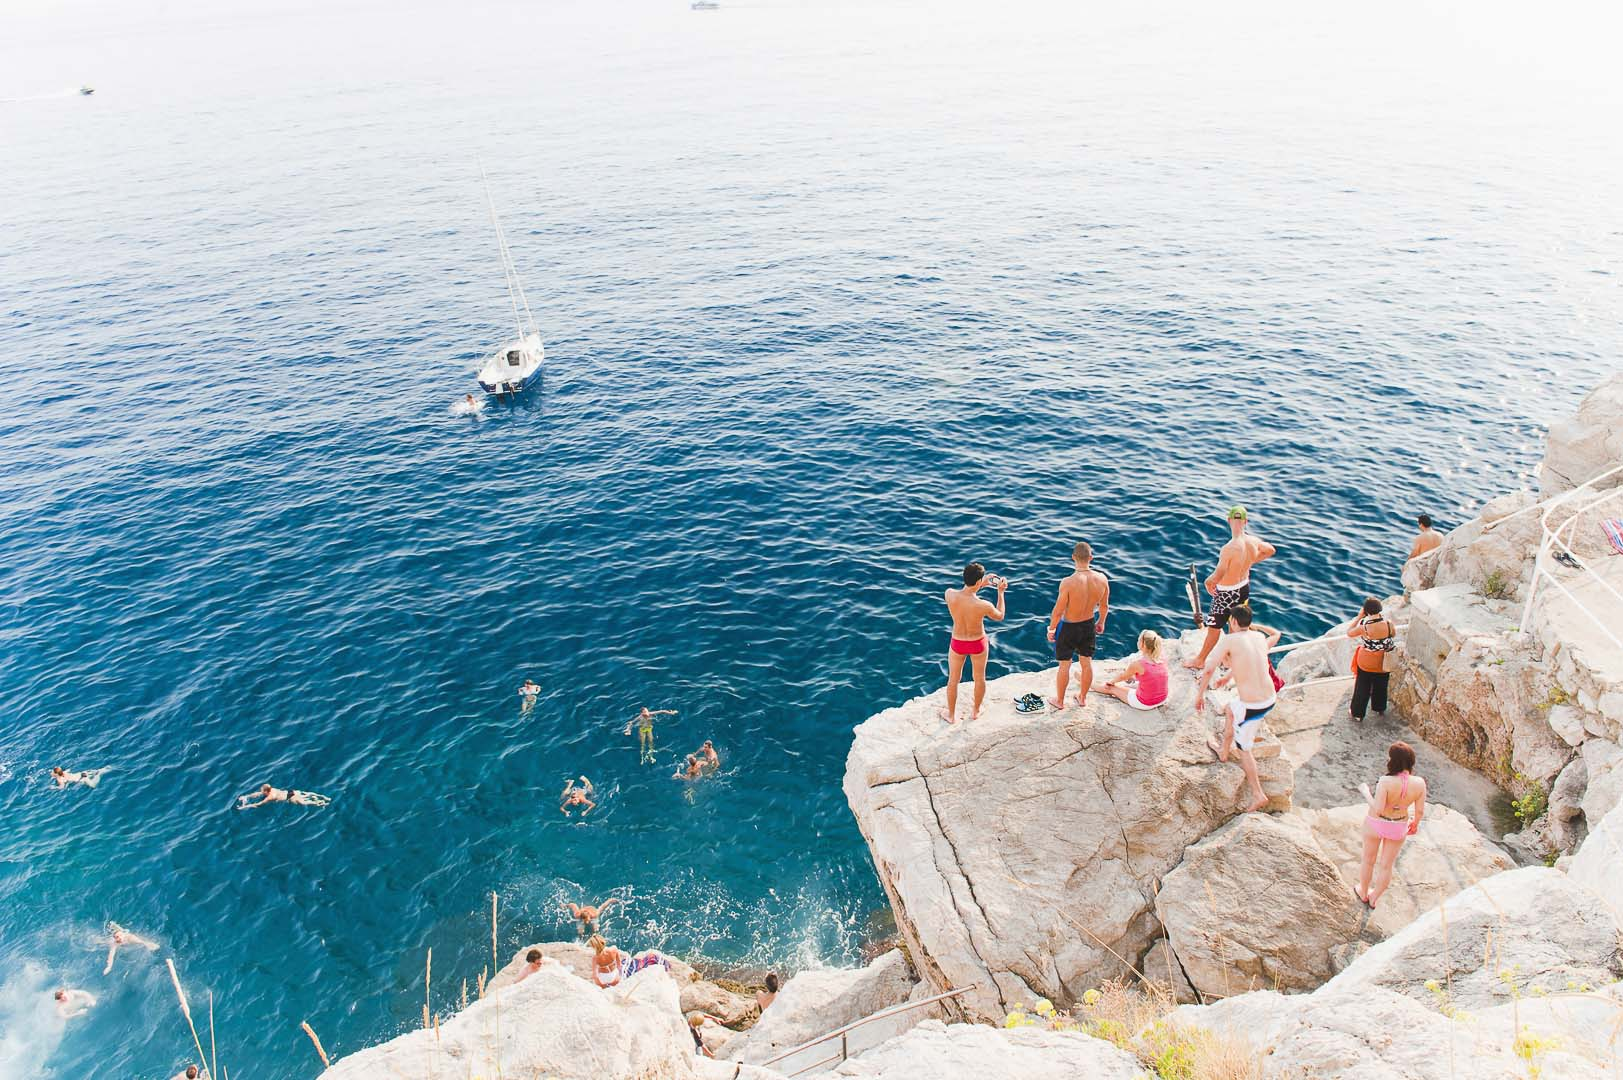 Dubrovnik, Croatia, Buza Bar, aka Cafe Buza, swimming off rocks, lifestyle travel photography by travel photographer Matthew Williams-Ellis